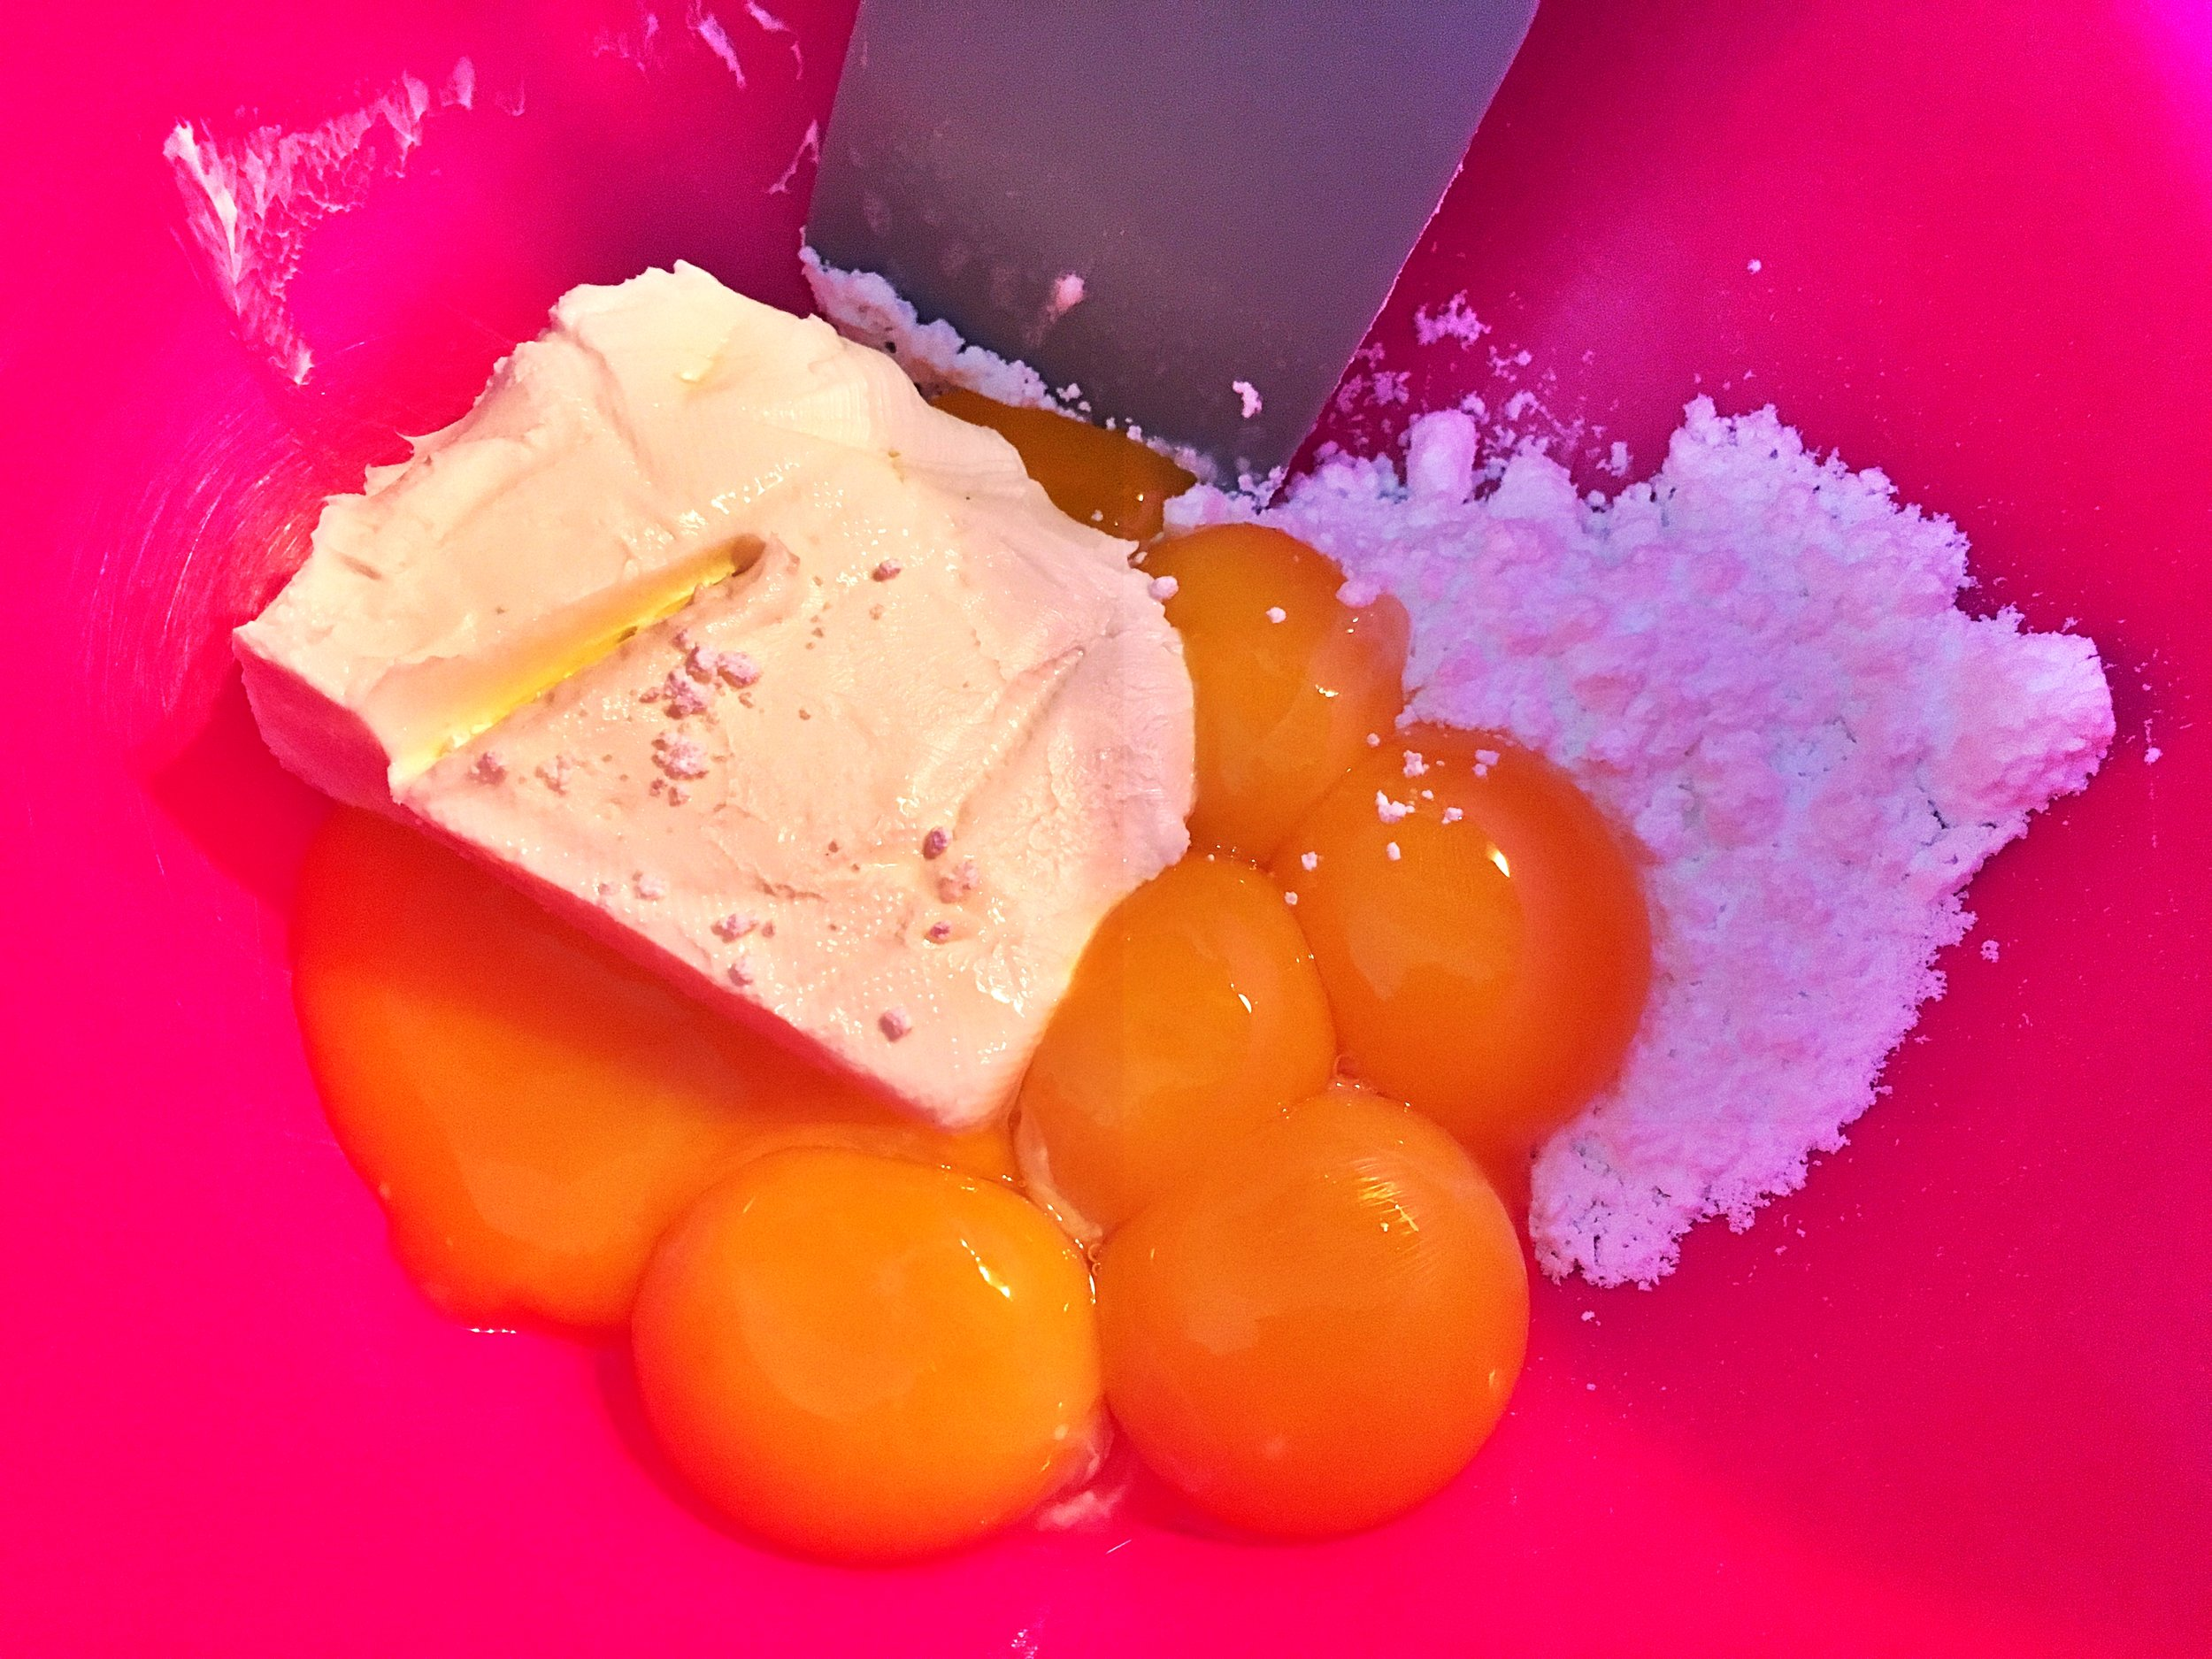 Soft cheese and yolk